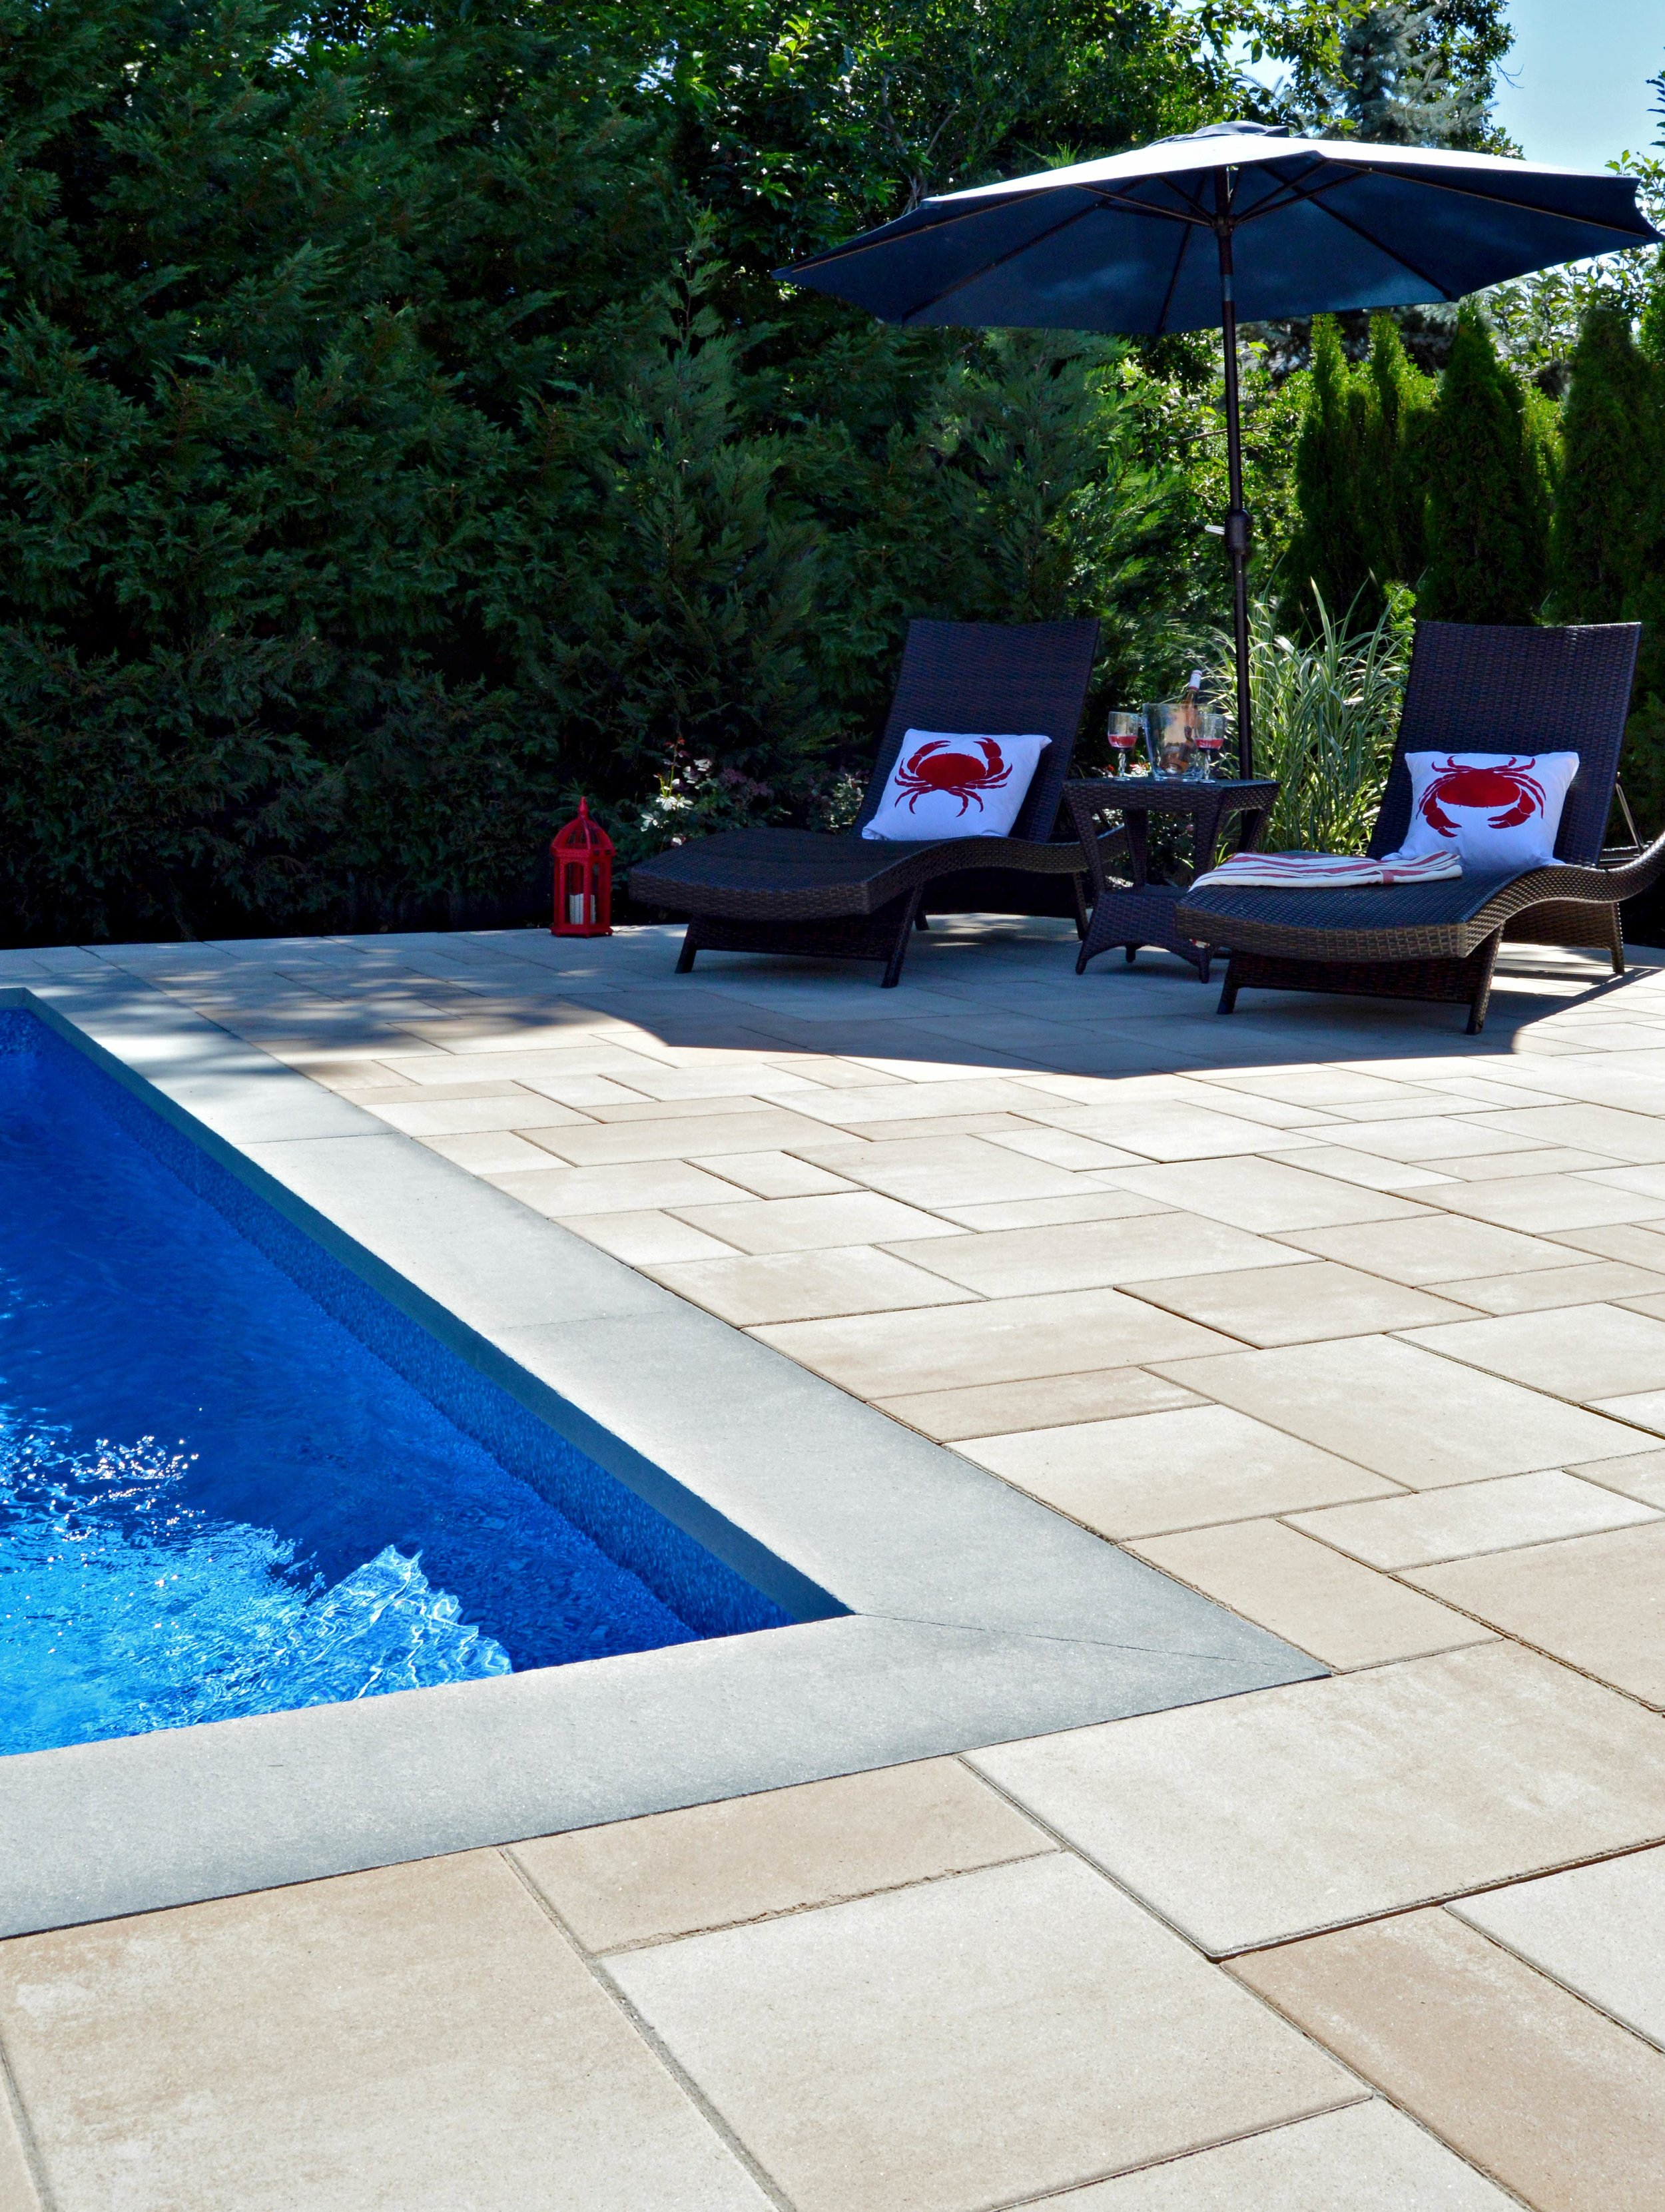 Babylon, NY swimming pool patio, landscape design, and couch contemporary style